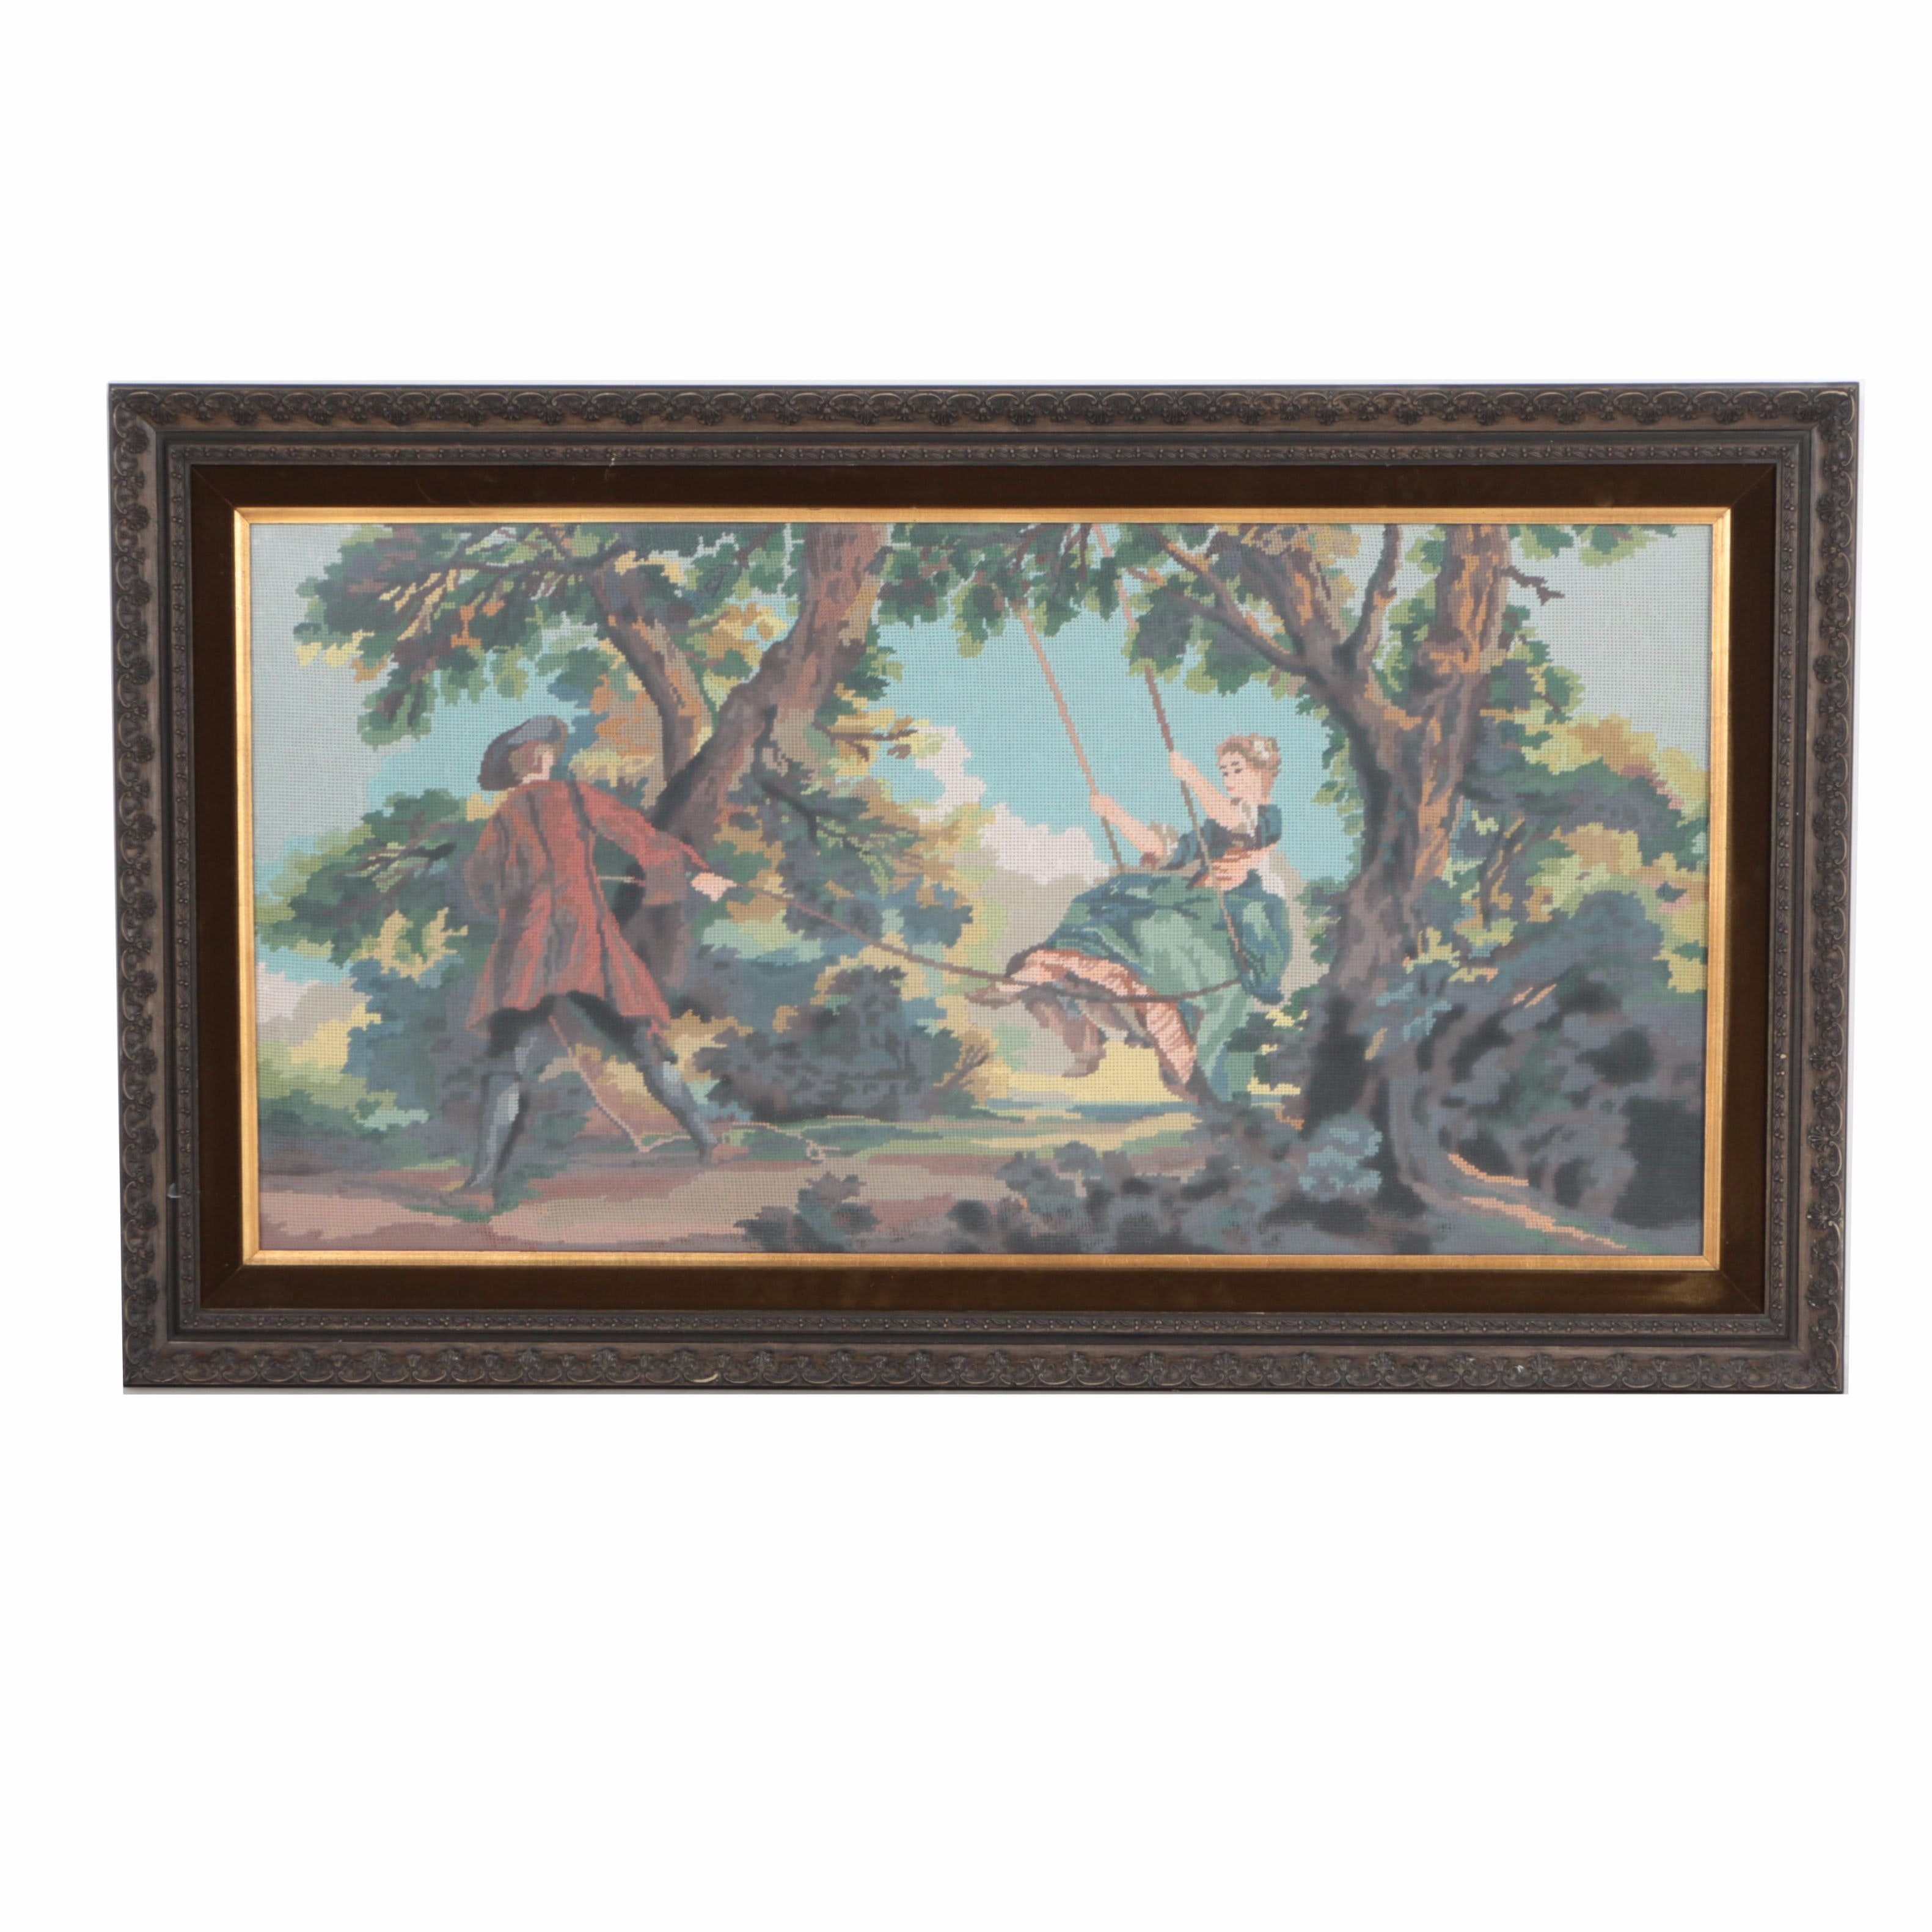 Framed Embroidery depicting a Victorian Couple